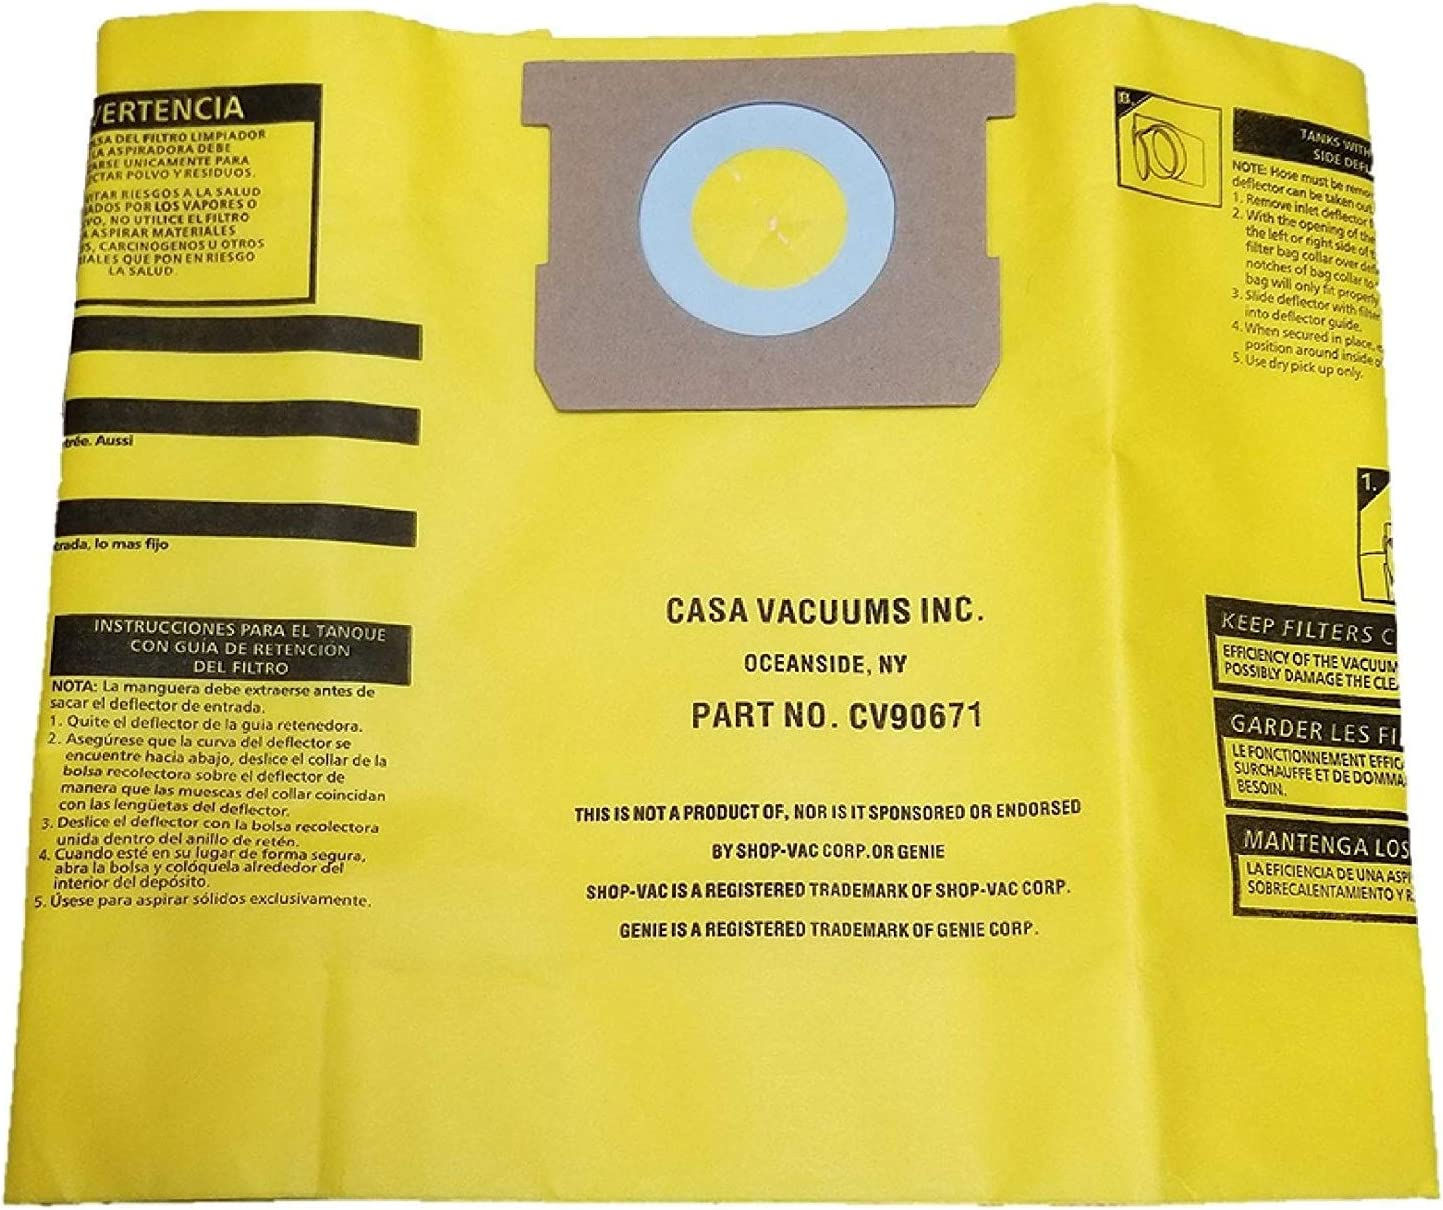 CASA VACUUMS replacement 25% Rapid rise OFF for Shop-Vac HIGH Gallon 5-8 EFFICIENCY